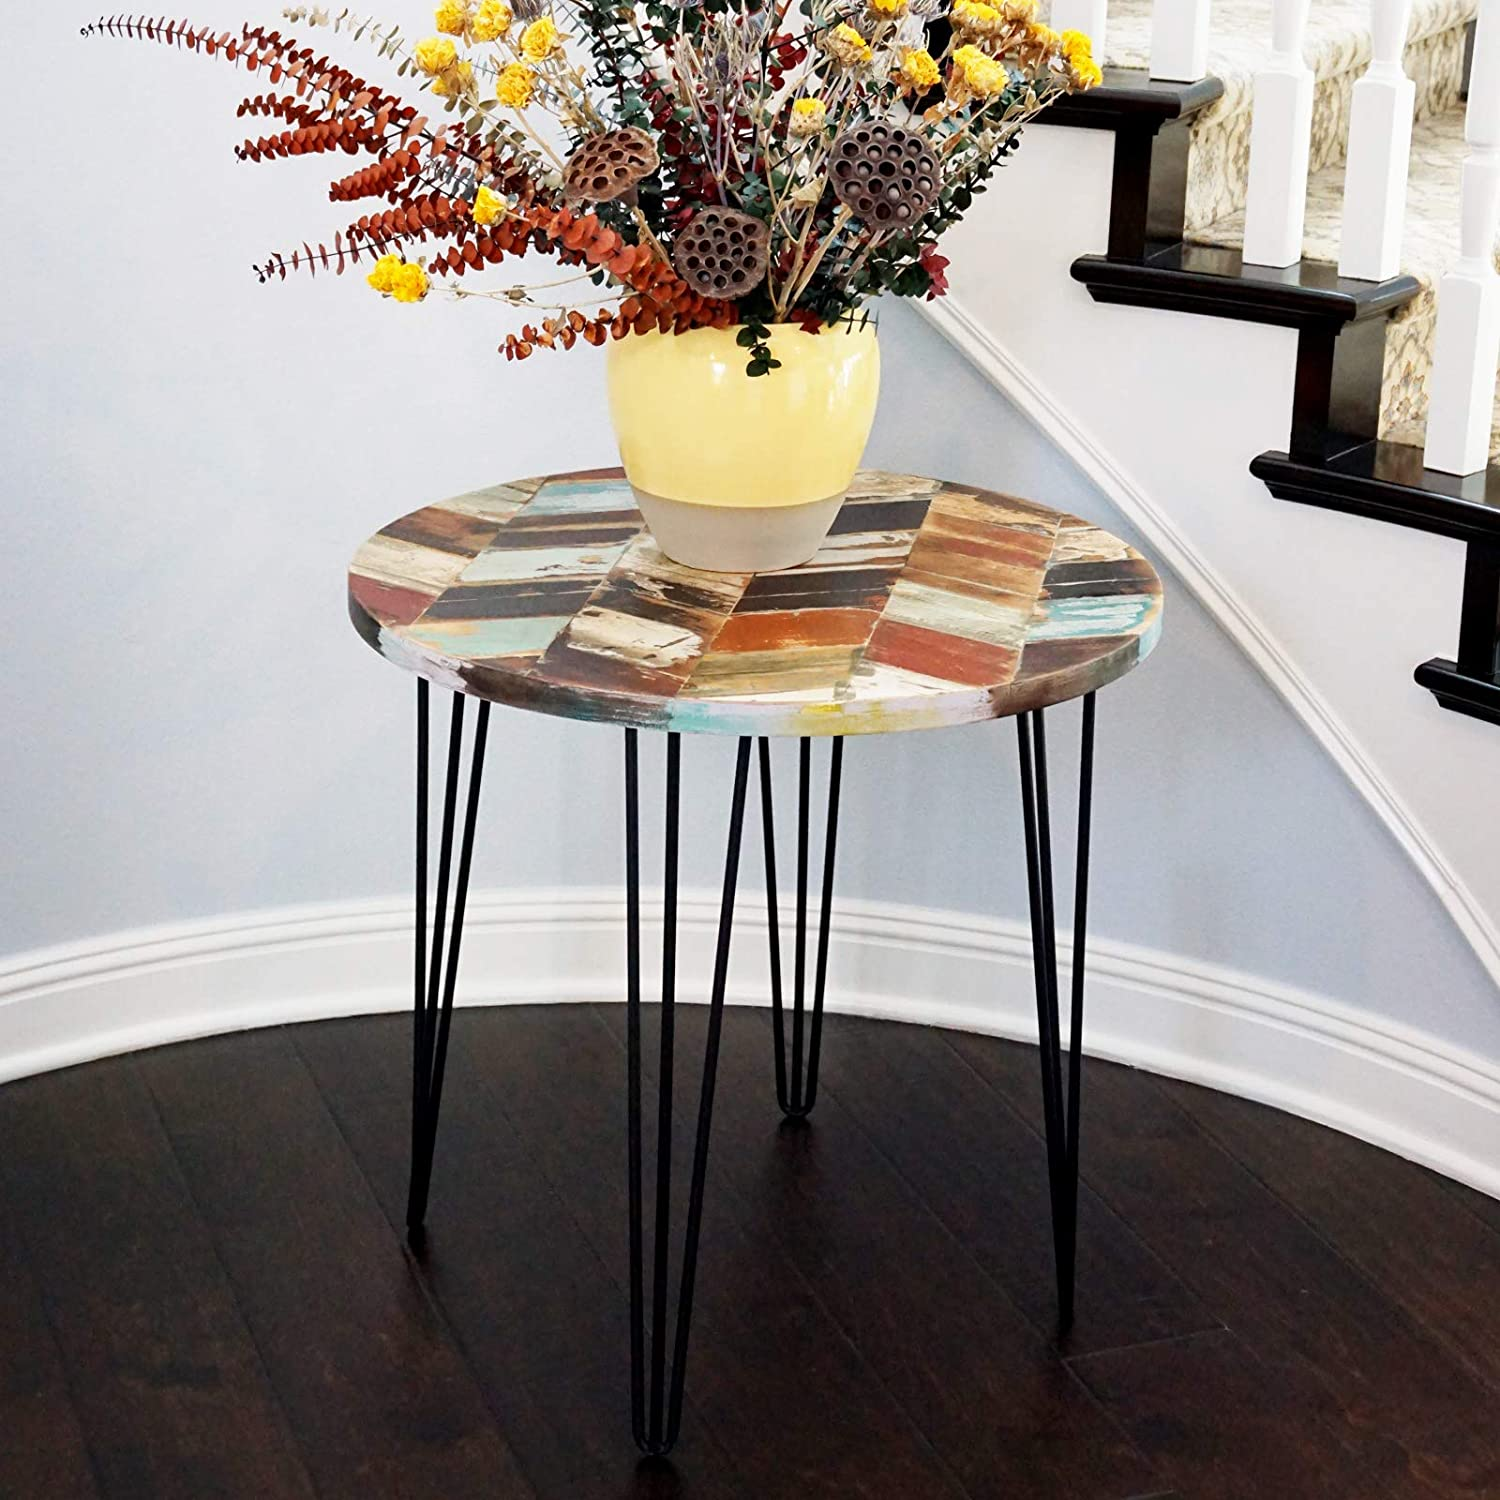 """WELLAND Side Table Reclaimed Wood, Round Hairpin Leg End Table, Night Stand, Recycled Boat Wood, 20"""" Tall"""